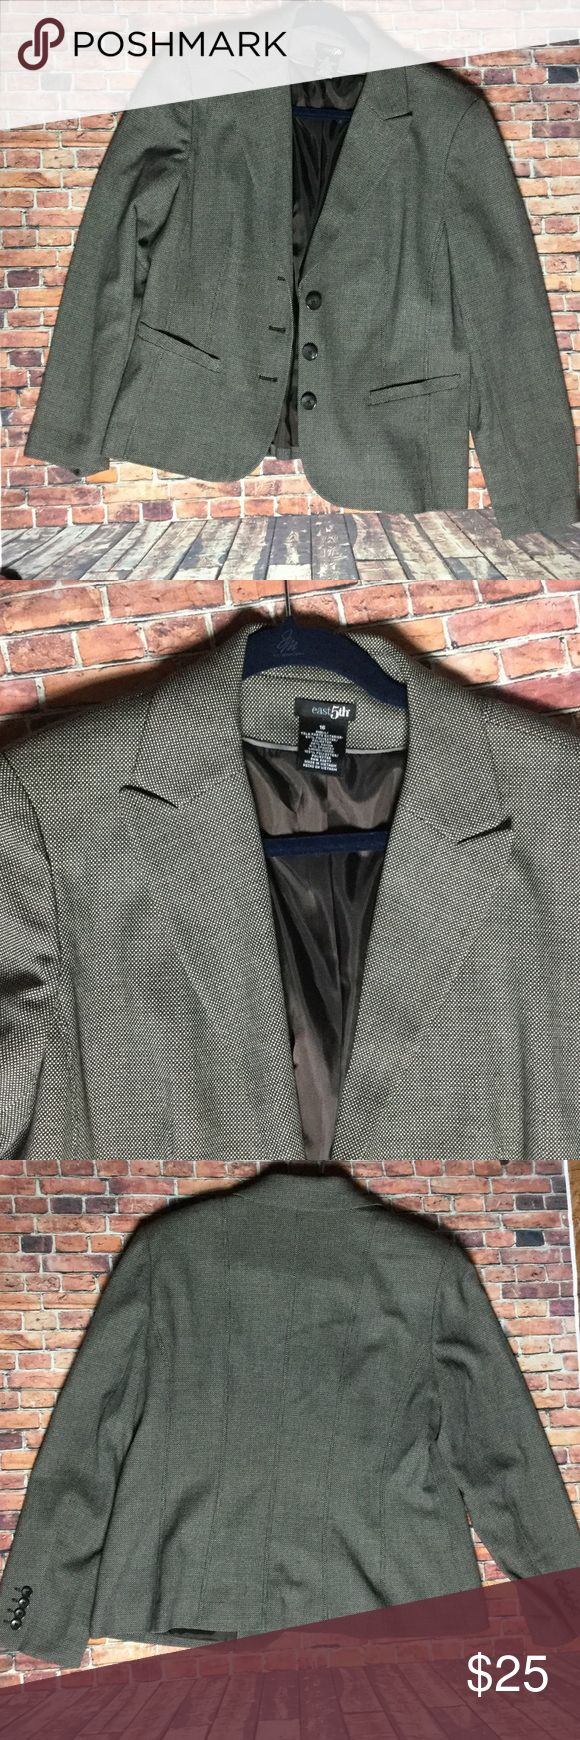 "Career wear staple tweed look blazer sz 16 euc East 5th sz 16 tweed like blazer. Three buttons polyester lined. Material exterior is polyester, rayon, spandex. Faux pockets. Armpit to armpit 22"". No flaws that I can see. Gray, brown, black color. Don't pass this deal up. Career wear staple. East 5th Jackets & Coats Blazers"